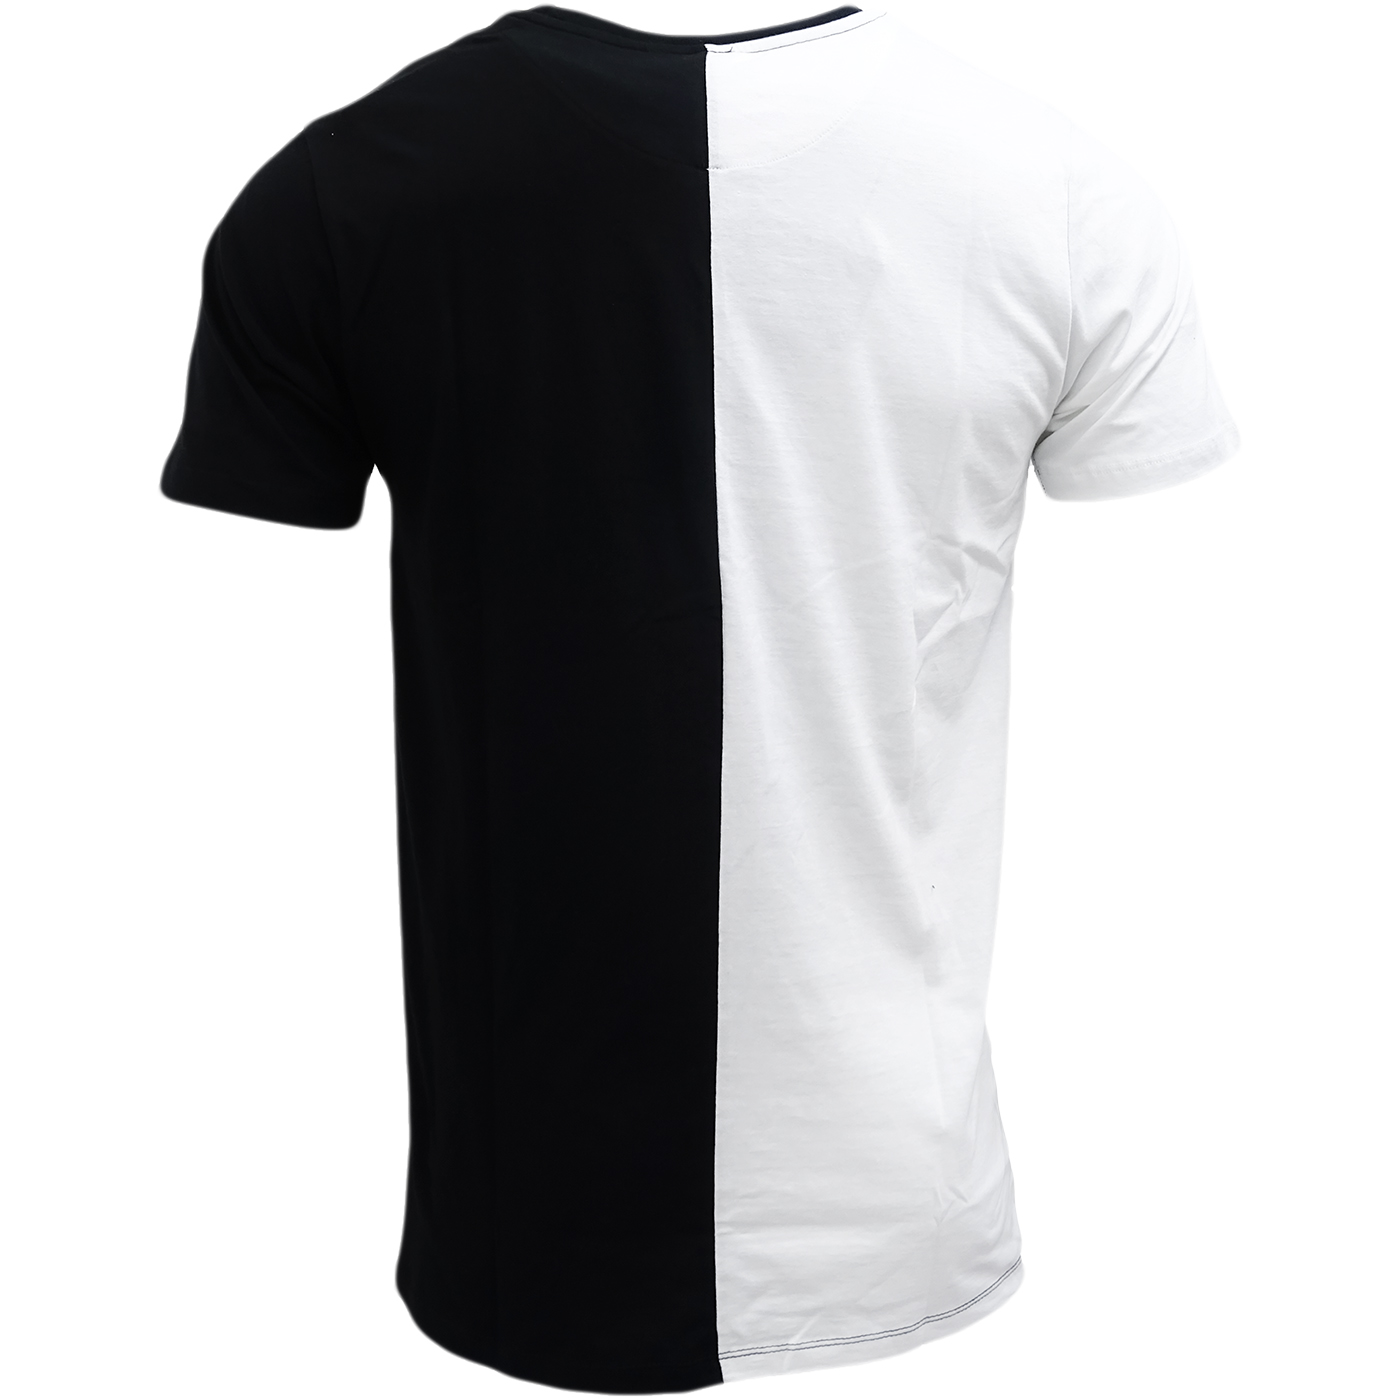 Split Wit Hype White Black Half White Half Black Split T Shirt